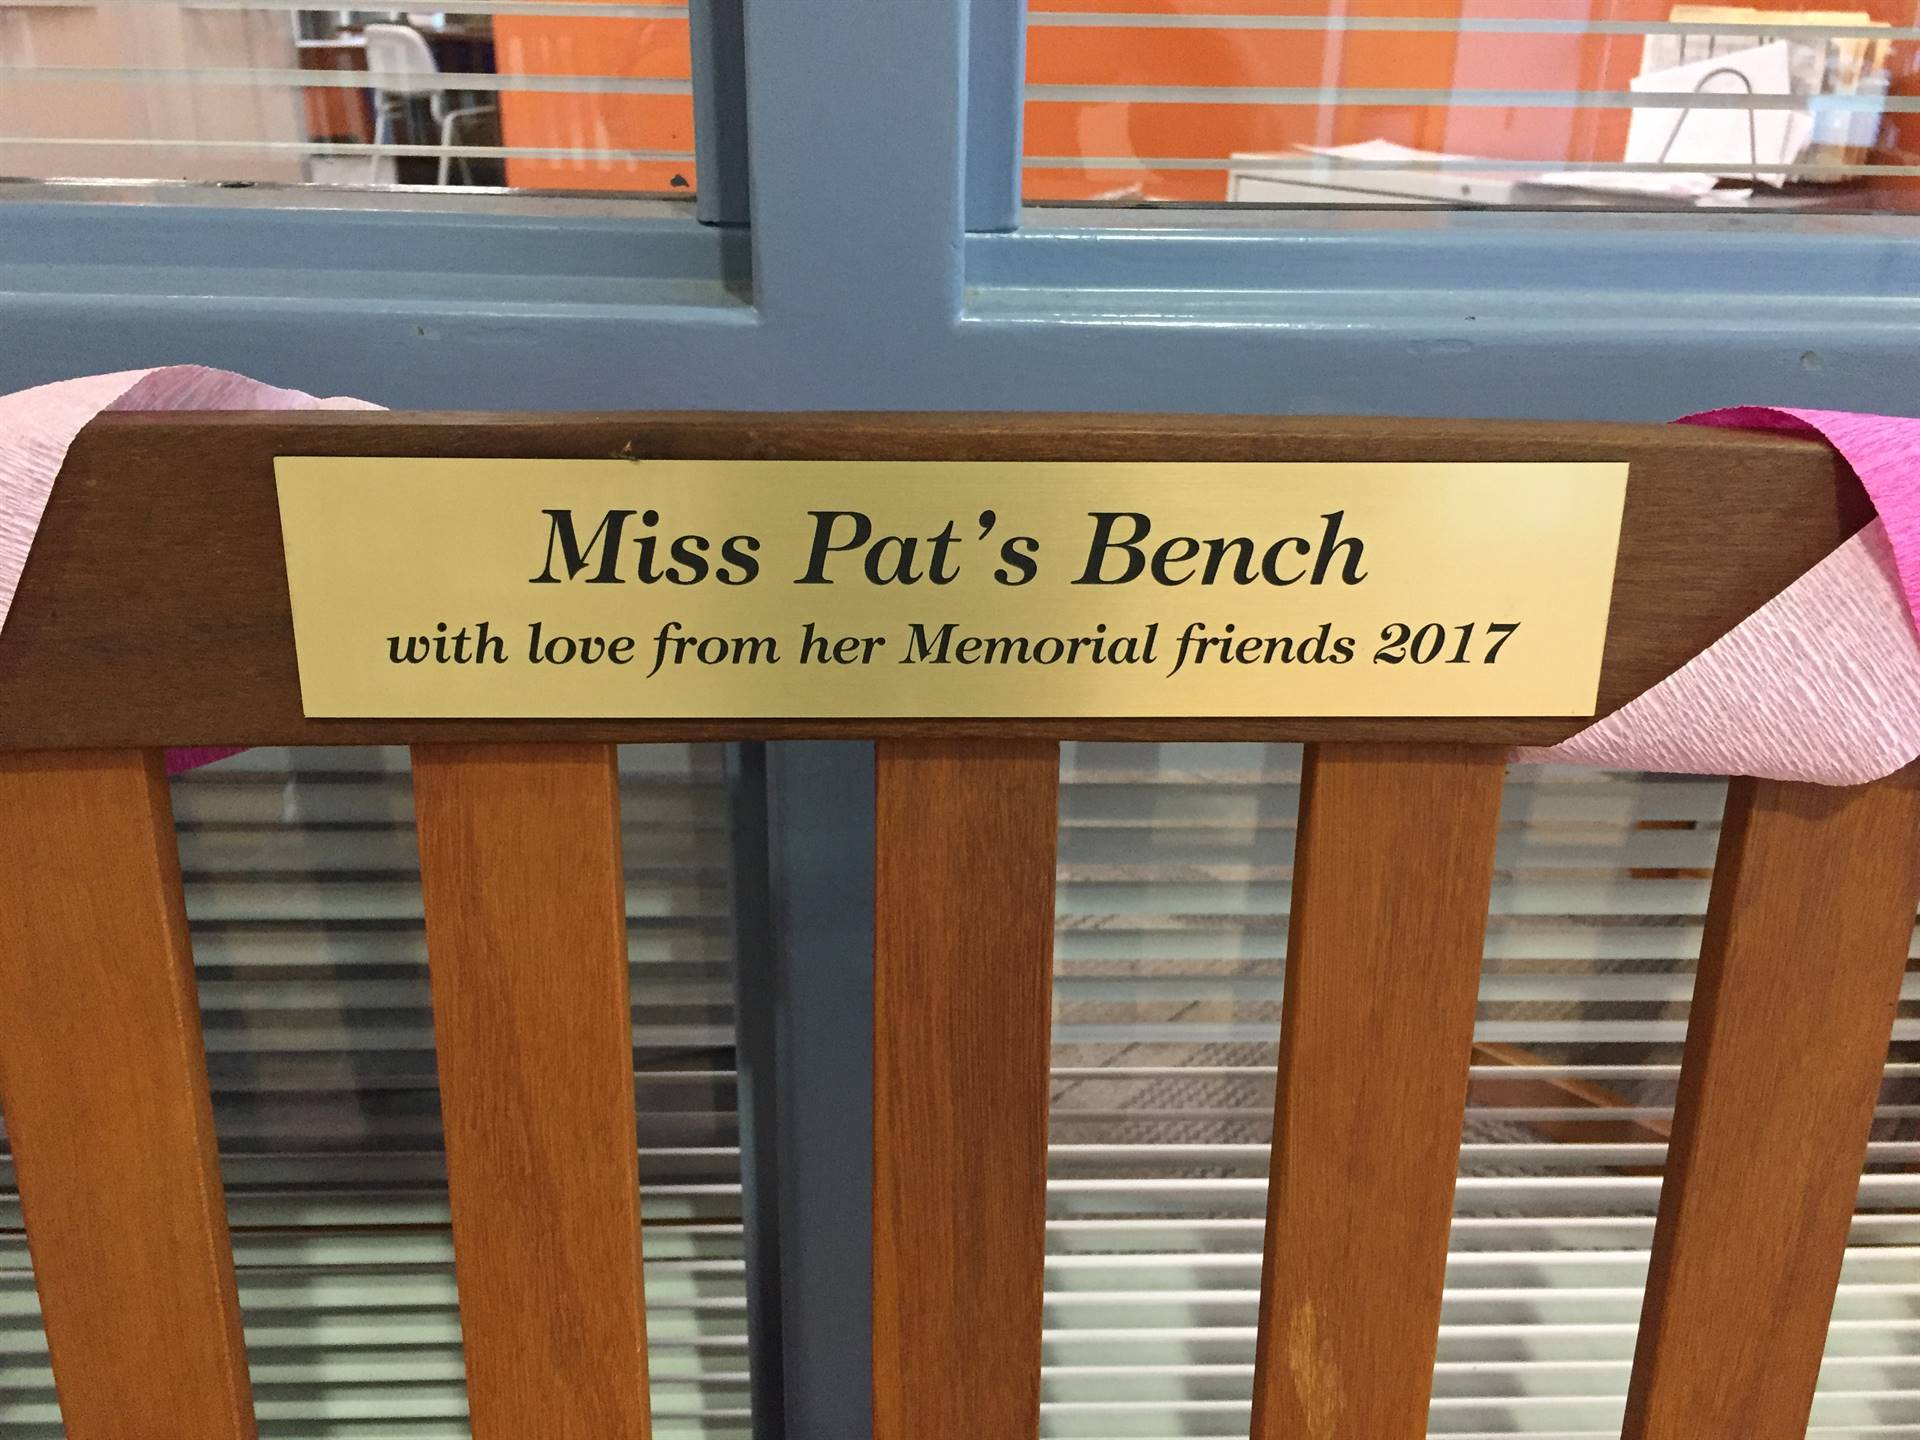 Miss Pat's Bench